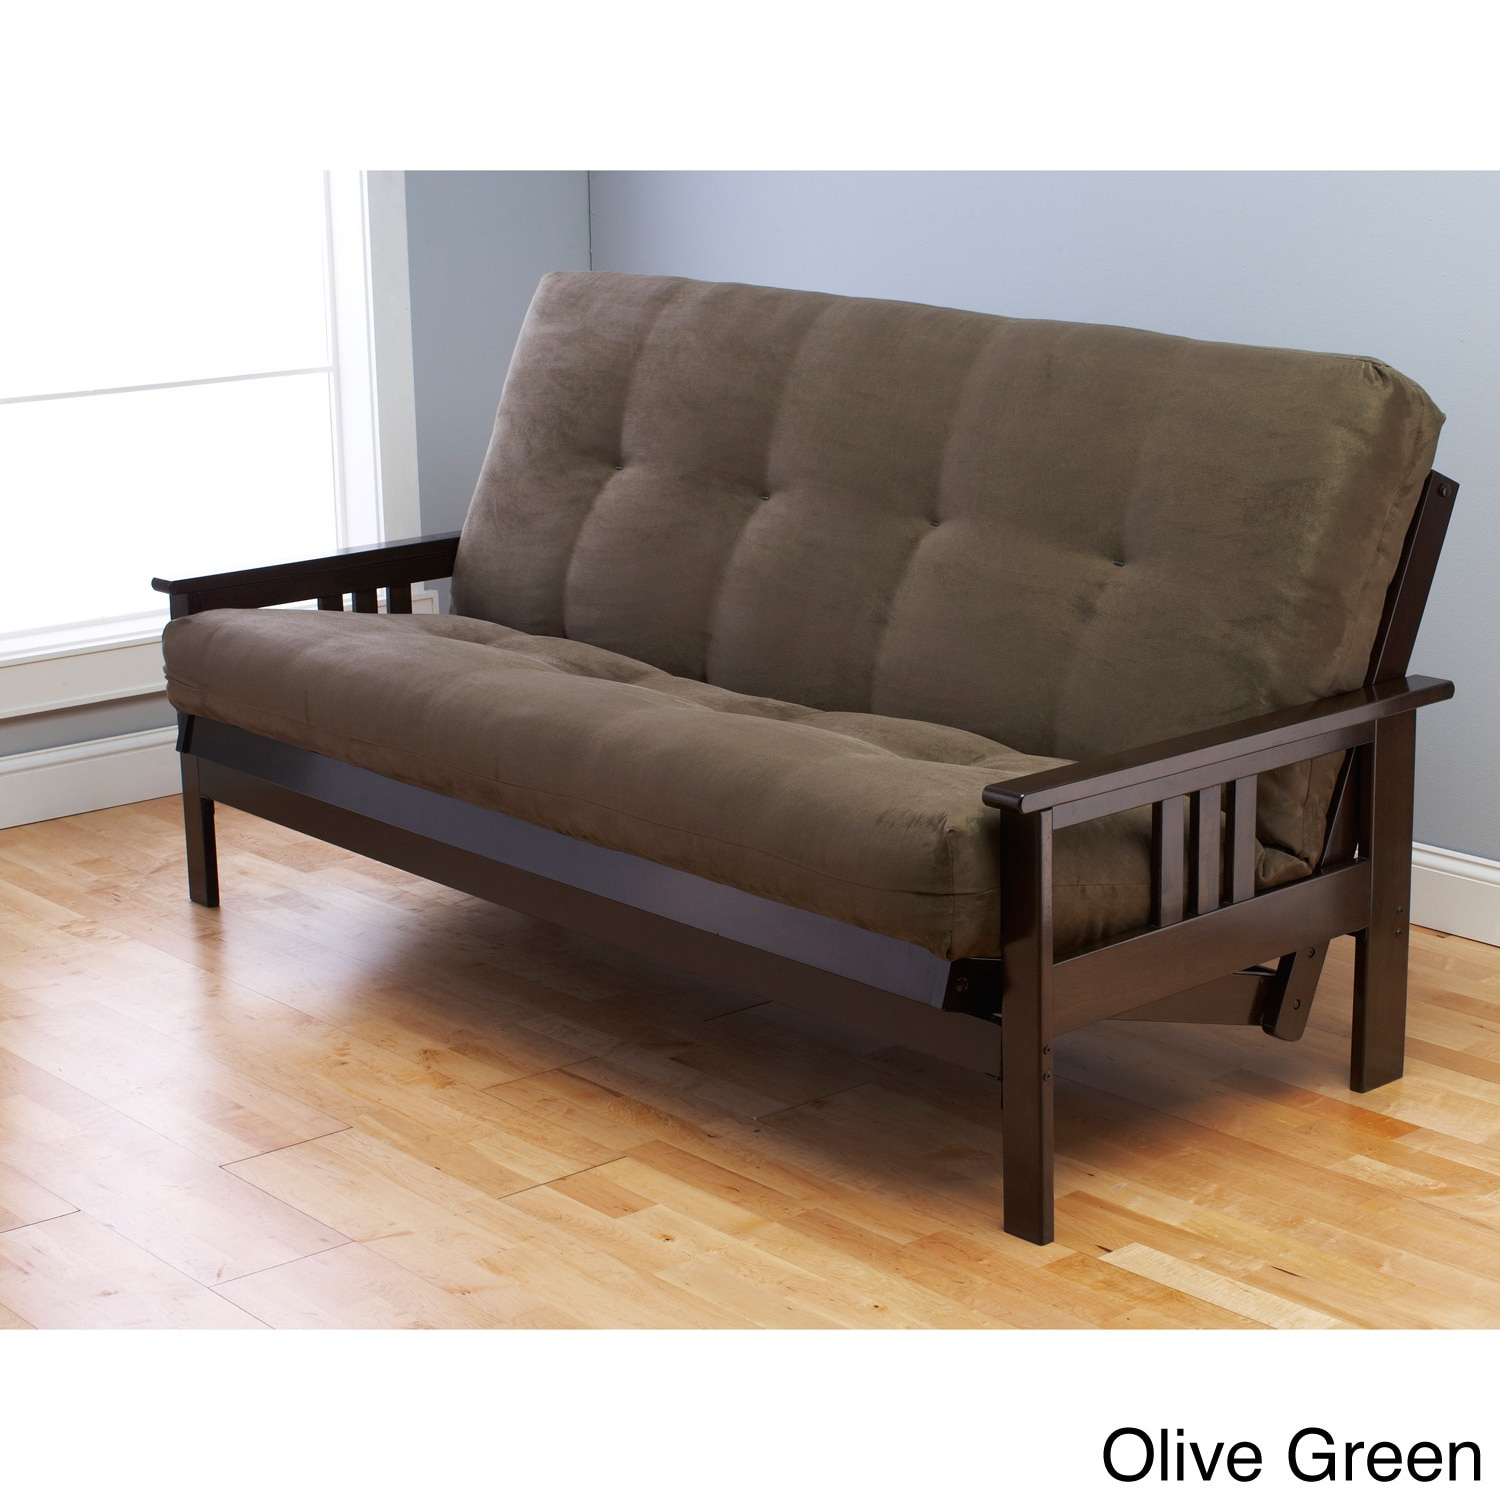 natural cherry or set queen cabinet bed day futon mattress product frame clover frames size mattresses futons and night d murphy mattressesfuton sofa